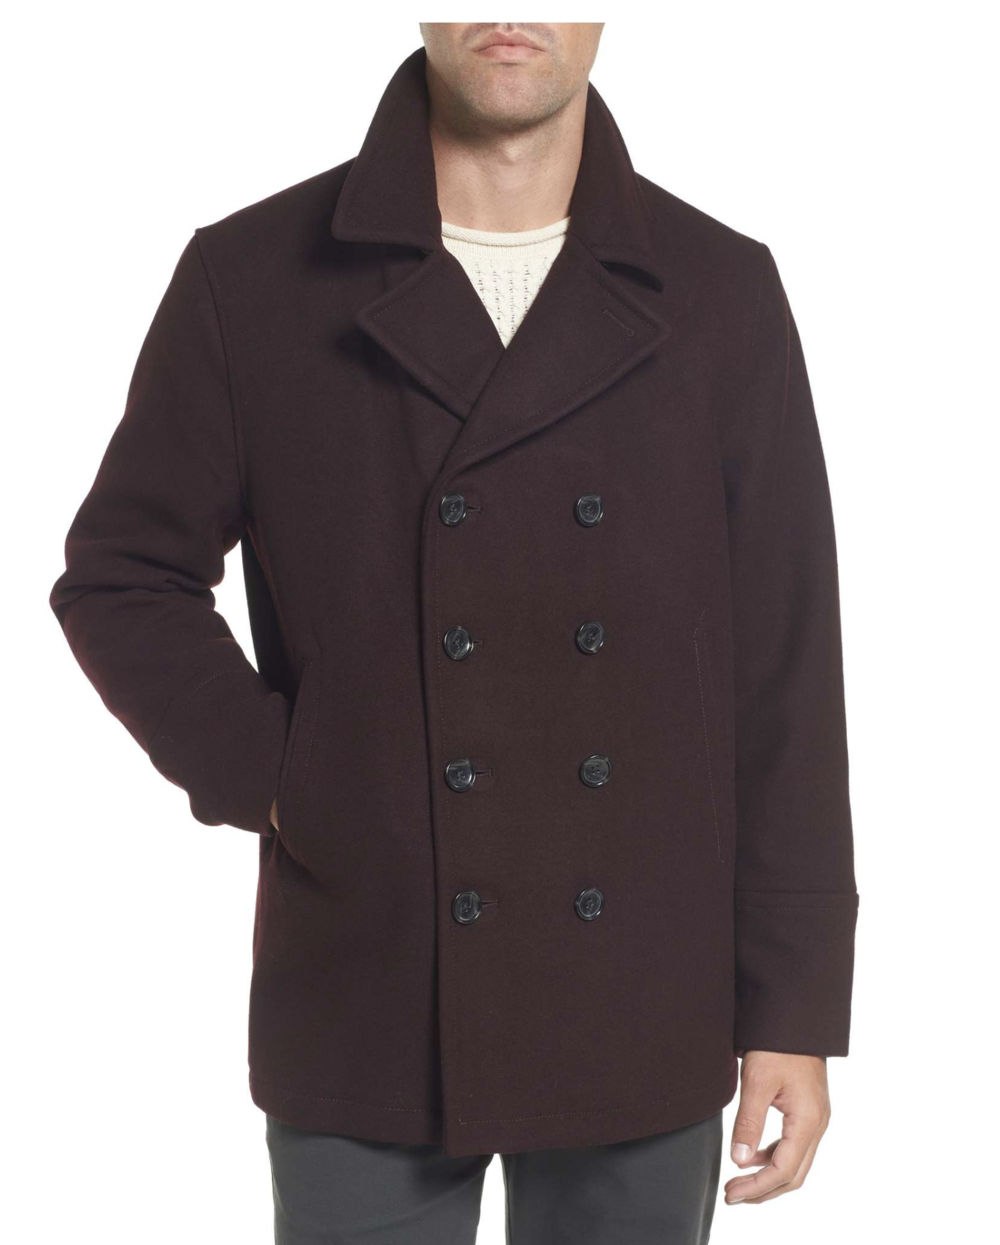 MICHAEL KORS - Wool Blend Double Breasted Peacoat